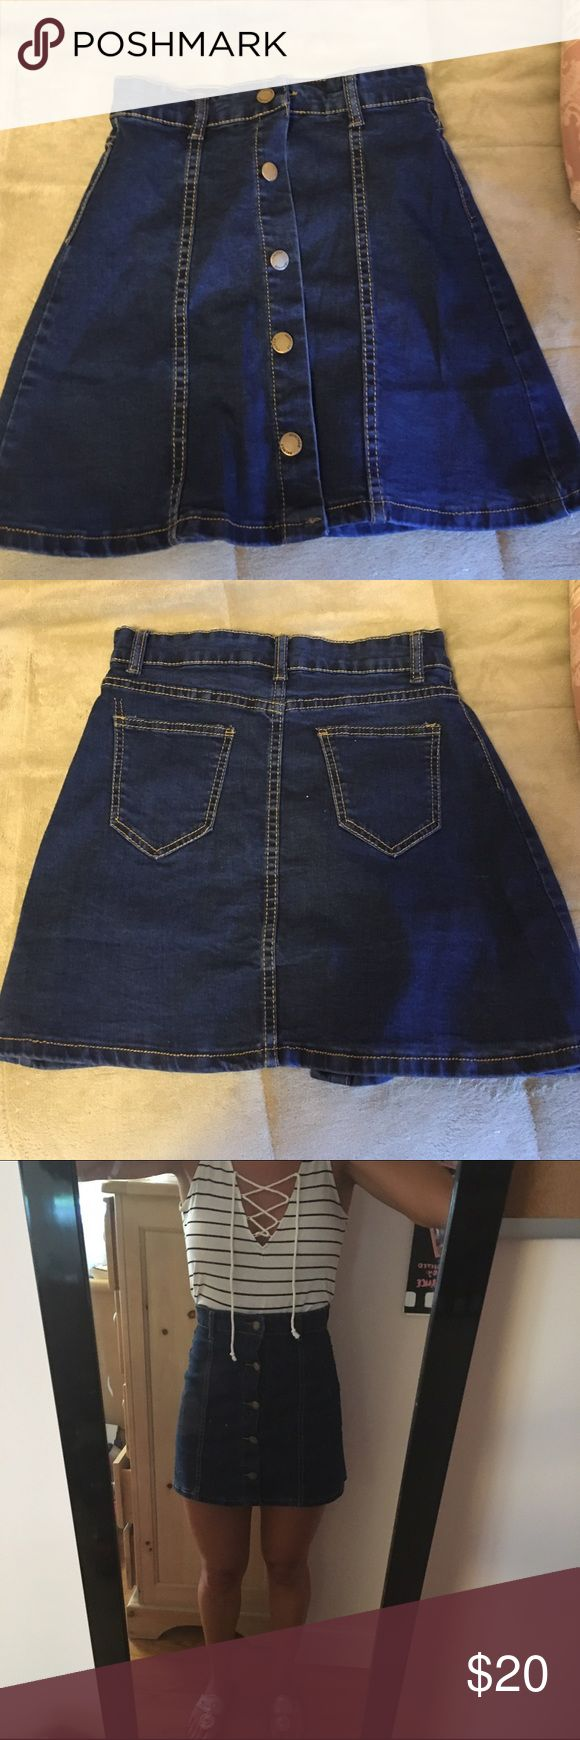 High waisted Jean Skirt Really cute Jean skirt, never been worn before Skirts A-Line or Full